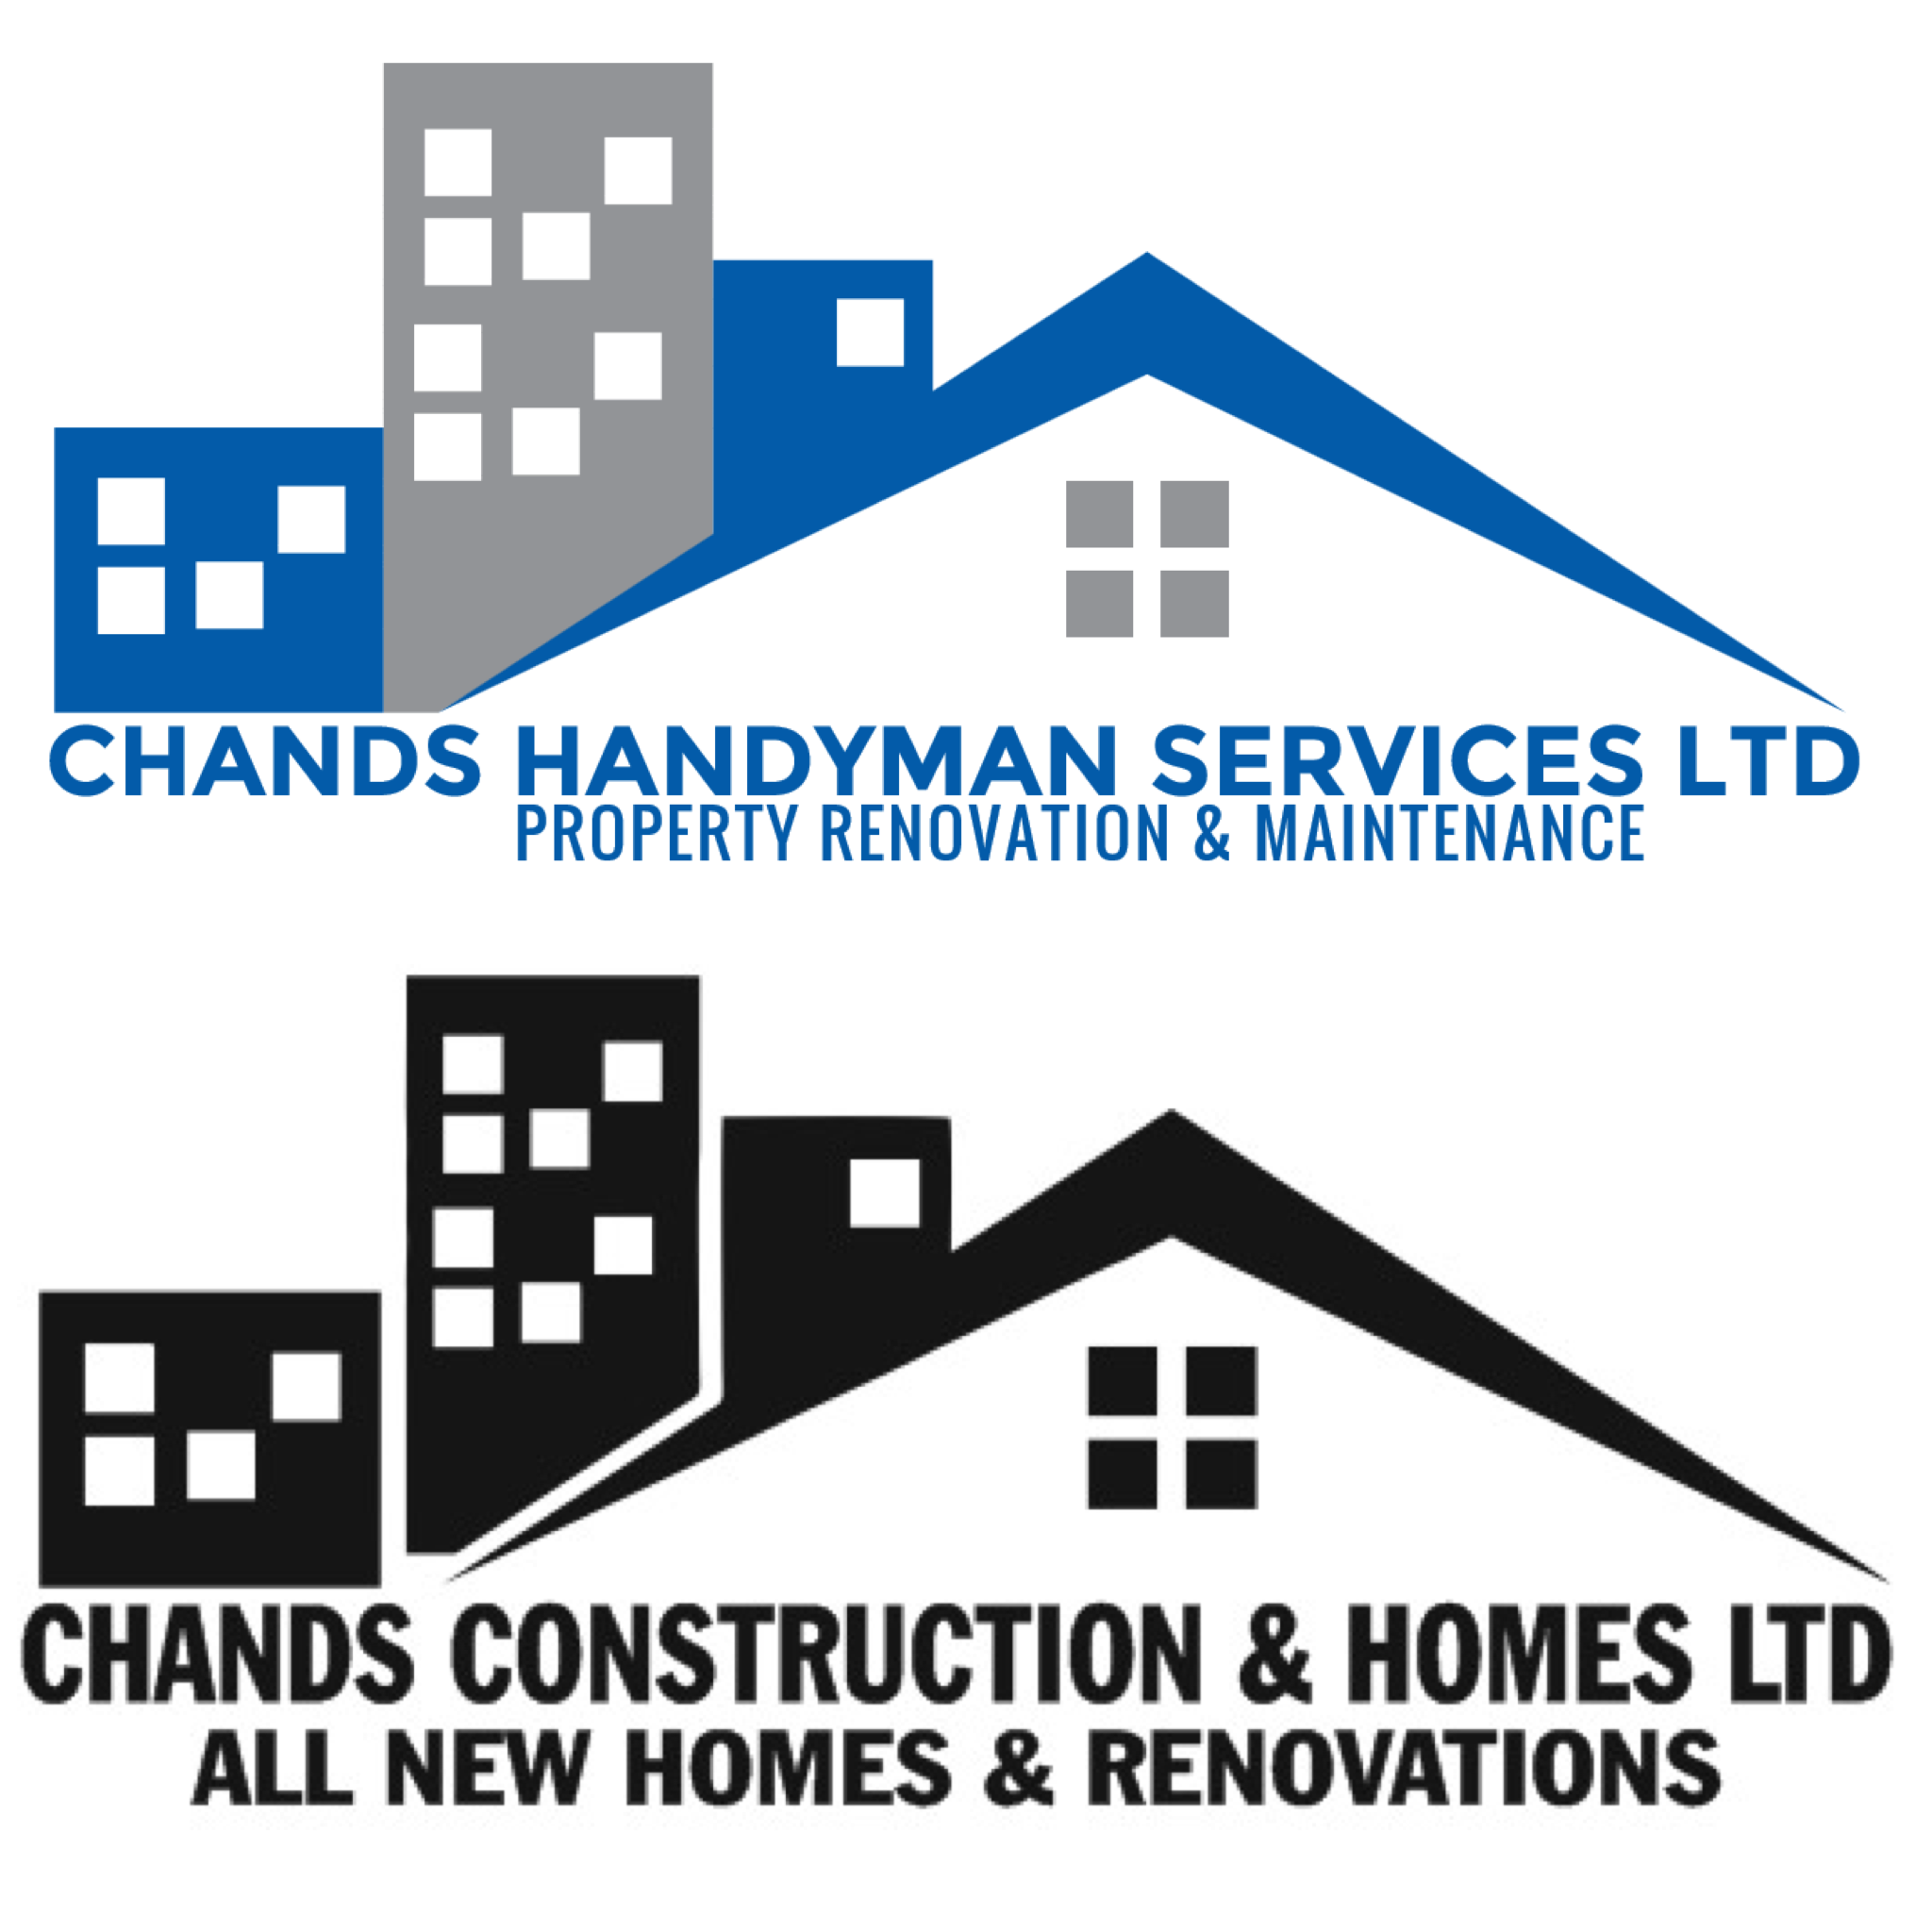 Chands Handyman Services Limited